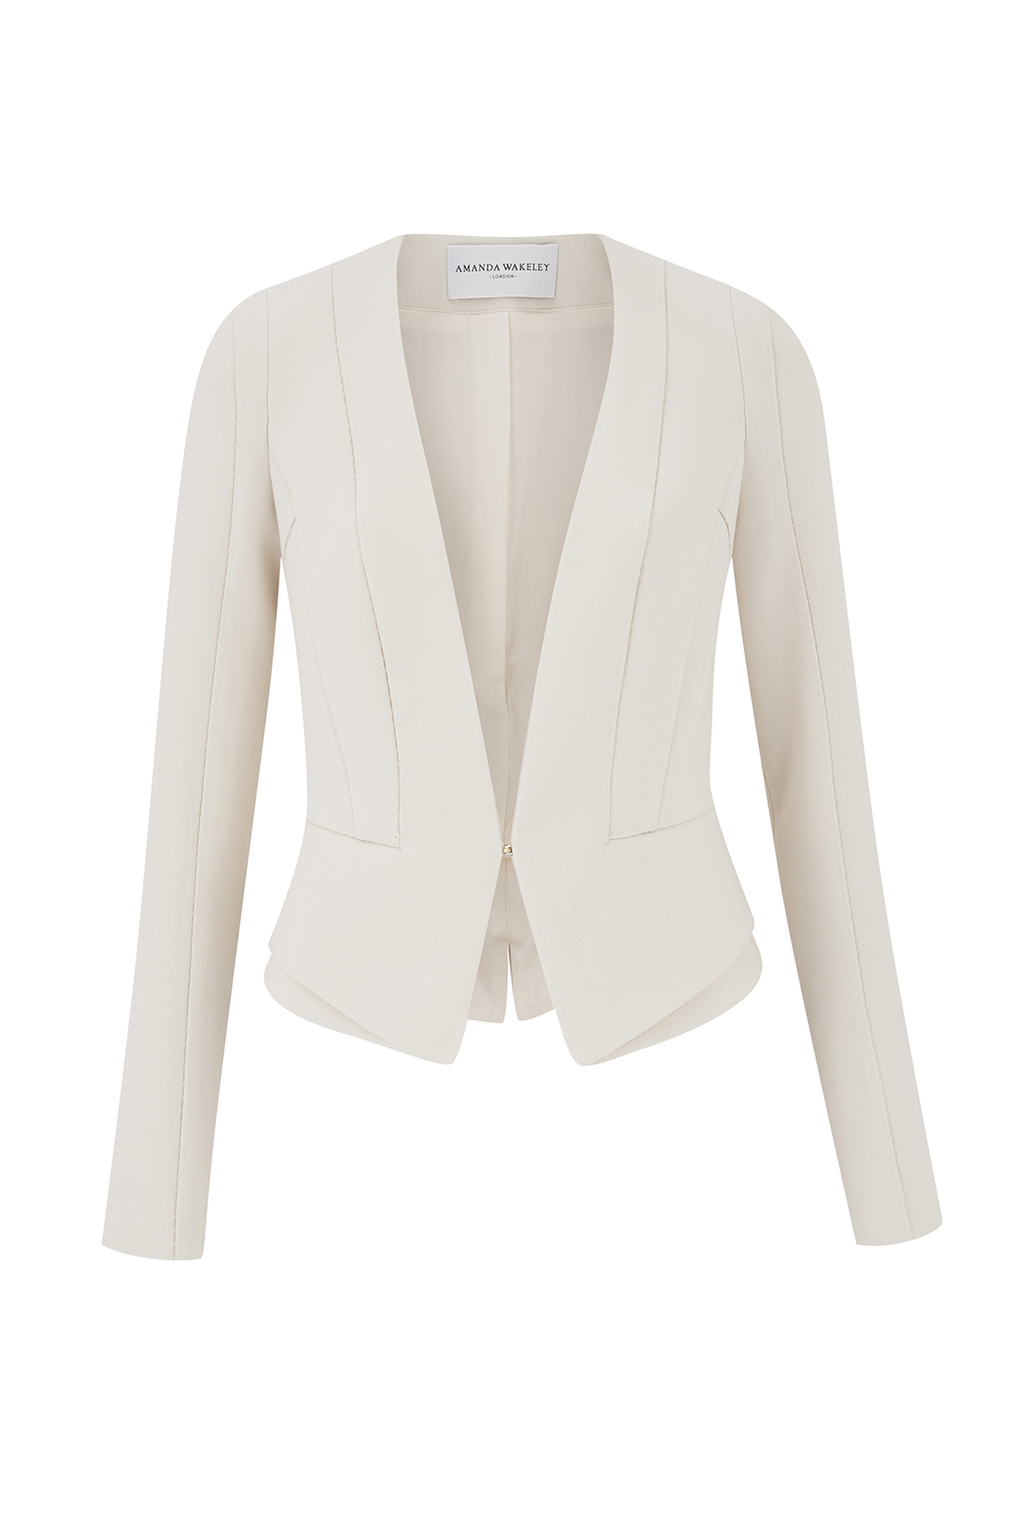 Midtown Cream Tailored Jacket - pattern: plain; style: single breasted blazer; collar: round collar/collarless; predominant colour: ivory/cream; length: standard; fit: tailored/fitted; fibres: polyester/polyamide - mix; occasions: occasion; sleeve length: long sleeve; sleeve style: standard; texture group: crepes; collar break: low/open; pattern type: fabric; season: a/w 2016; wardrobe: event